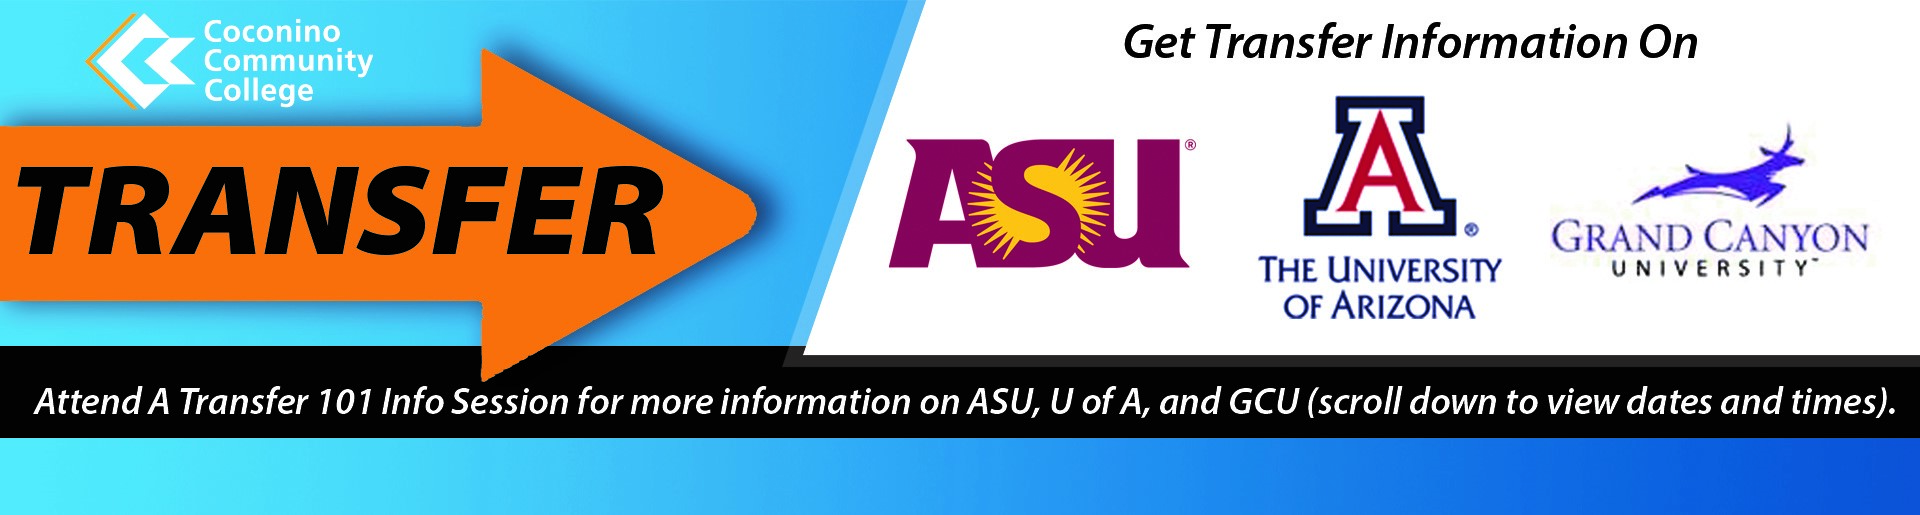 Basic Transfer Timeline for CCC Students interested in Transferring to ASU, U of A, or GCU